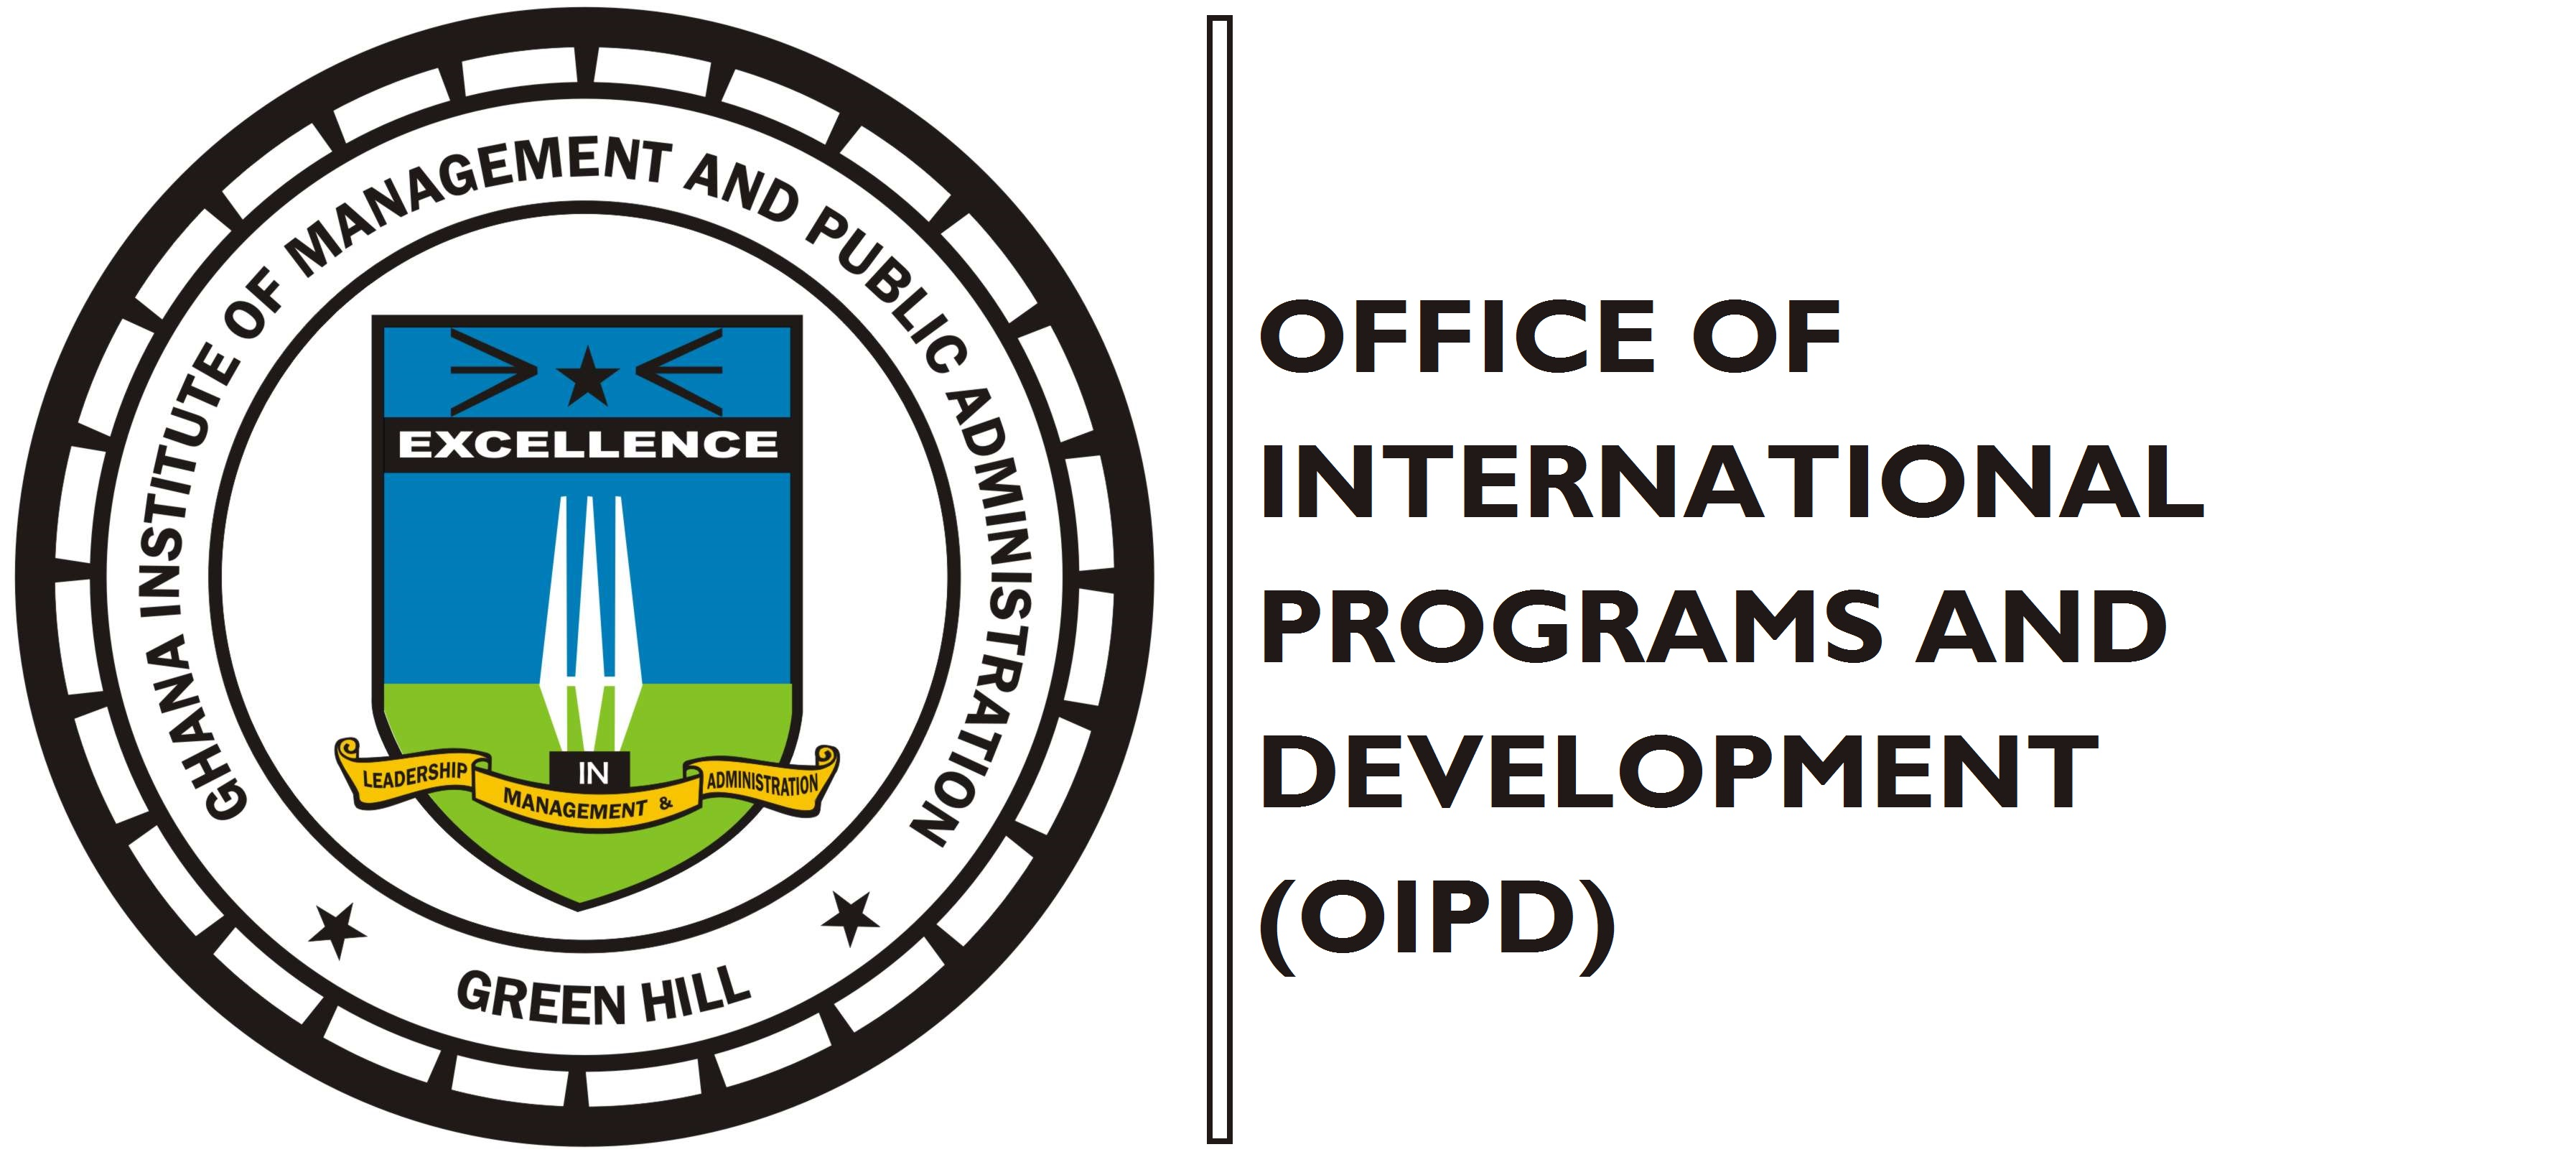 OFFICE OF THE INTERNATIONAL PROGRAMS AND DEVELOPMENT, GIMPA